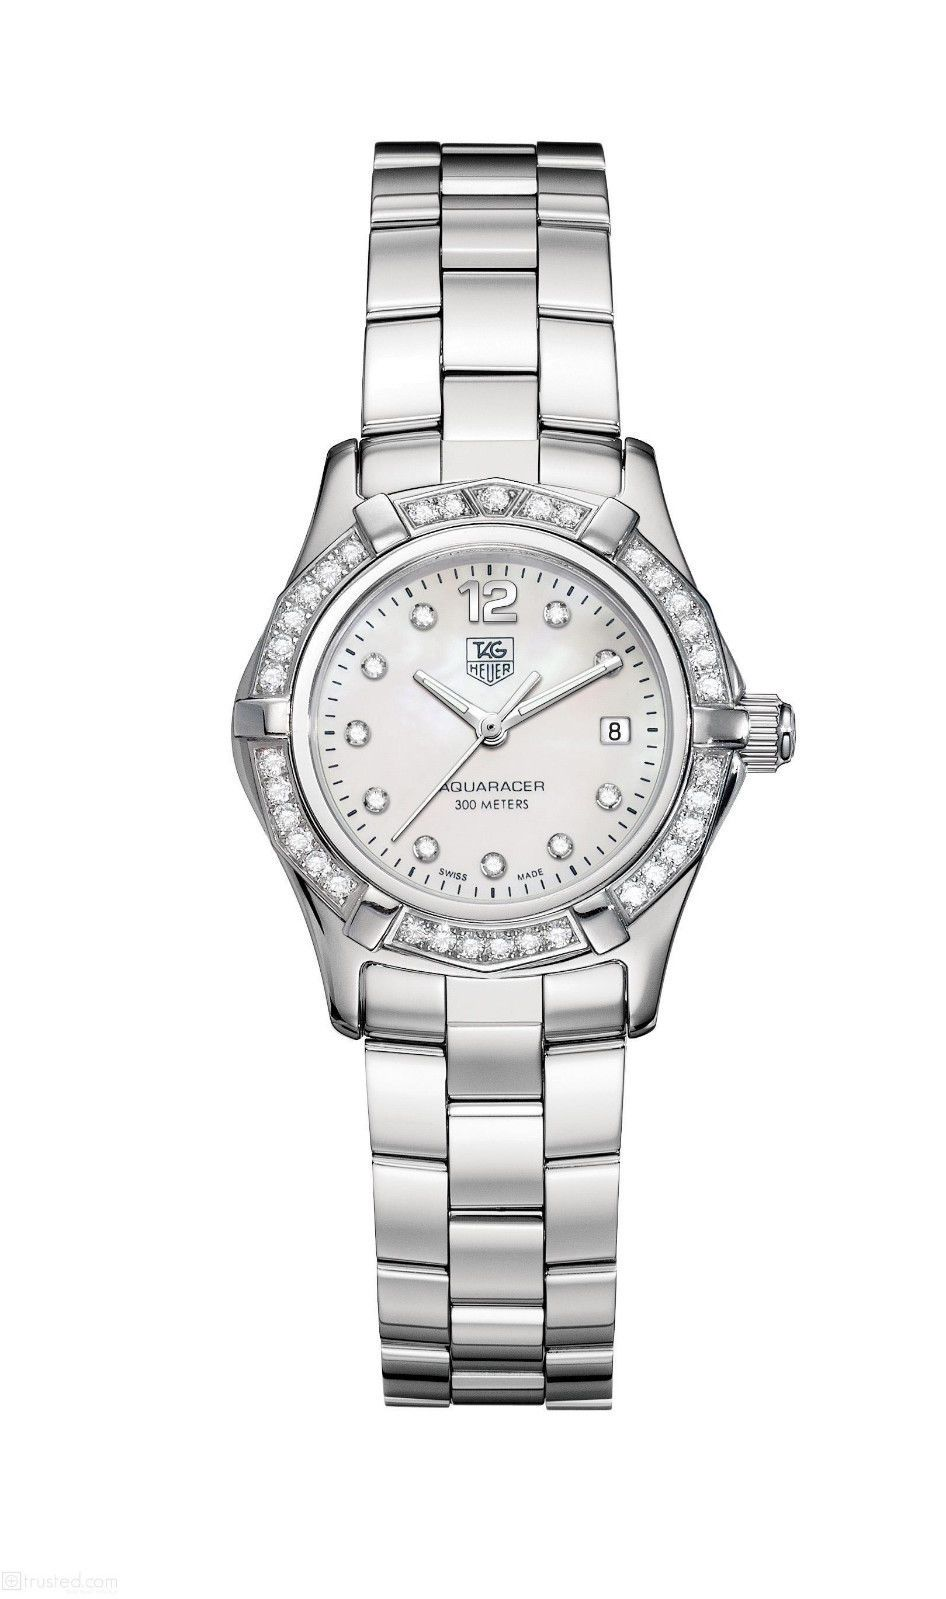 Tag heuer aquaracer diamond dial bezel ladies watch waf1416 ba0813 for Tag heuer women